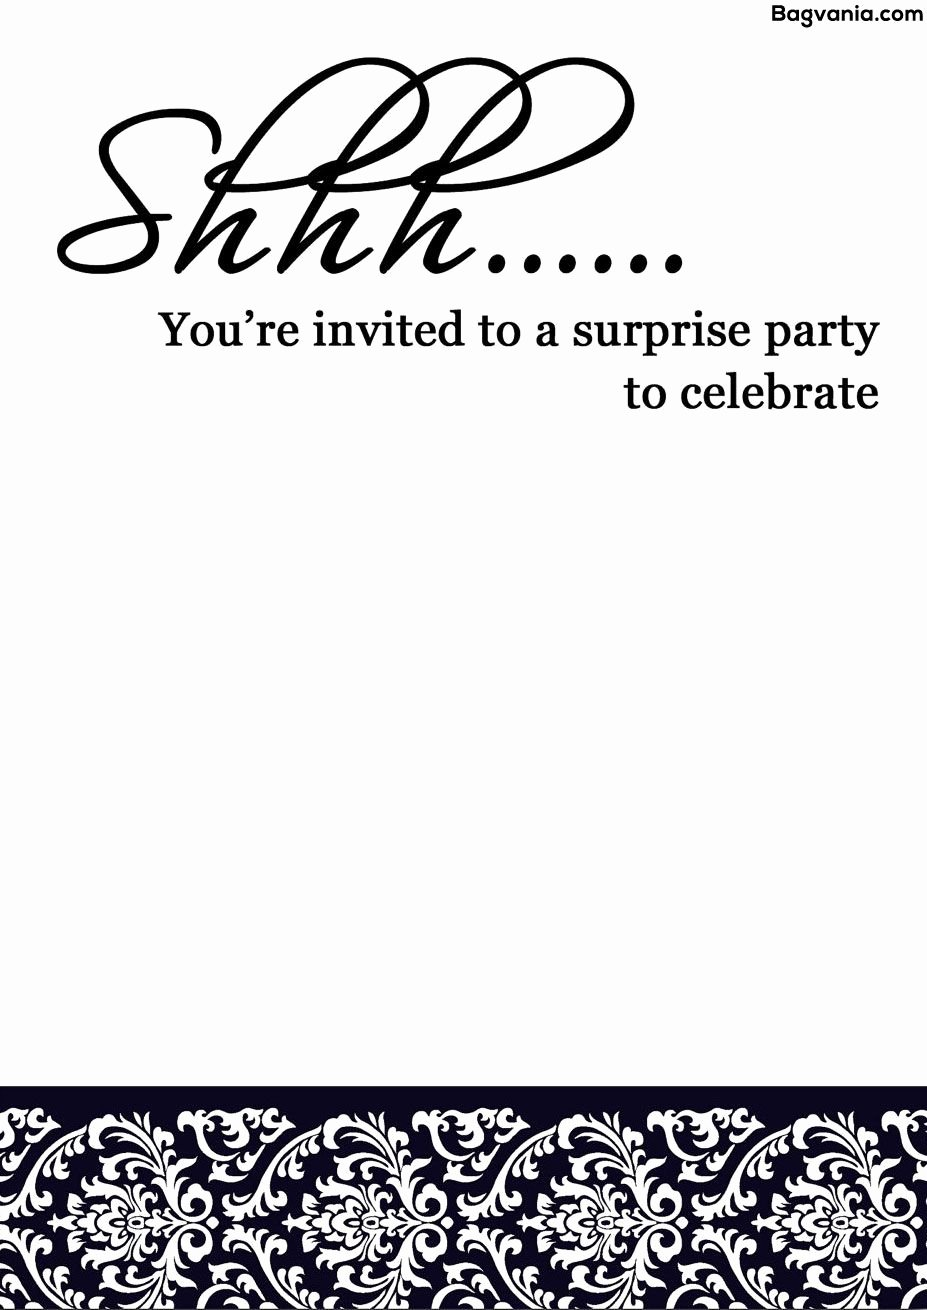 Free Printable Surprise Birthday Invitations Elegant Free Printable Surprise Birthday Invitations – Bagvania